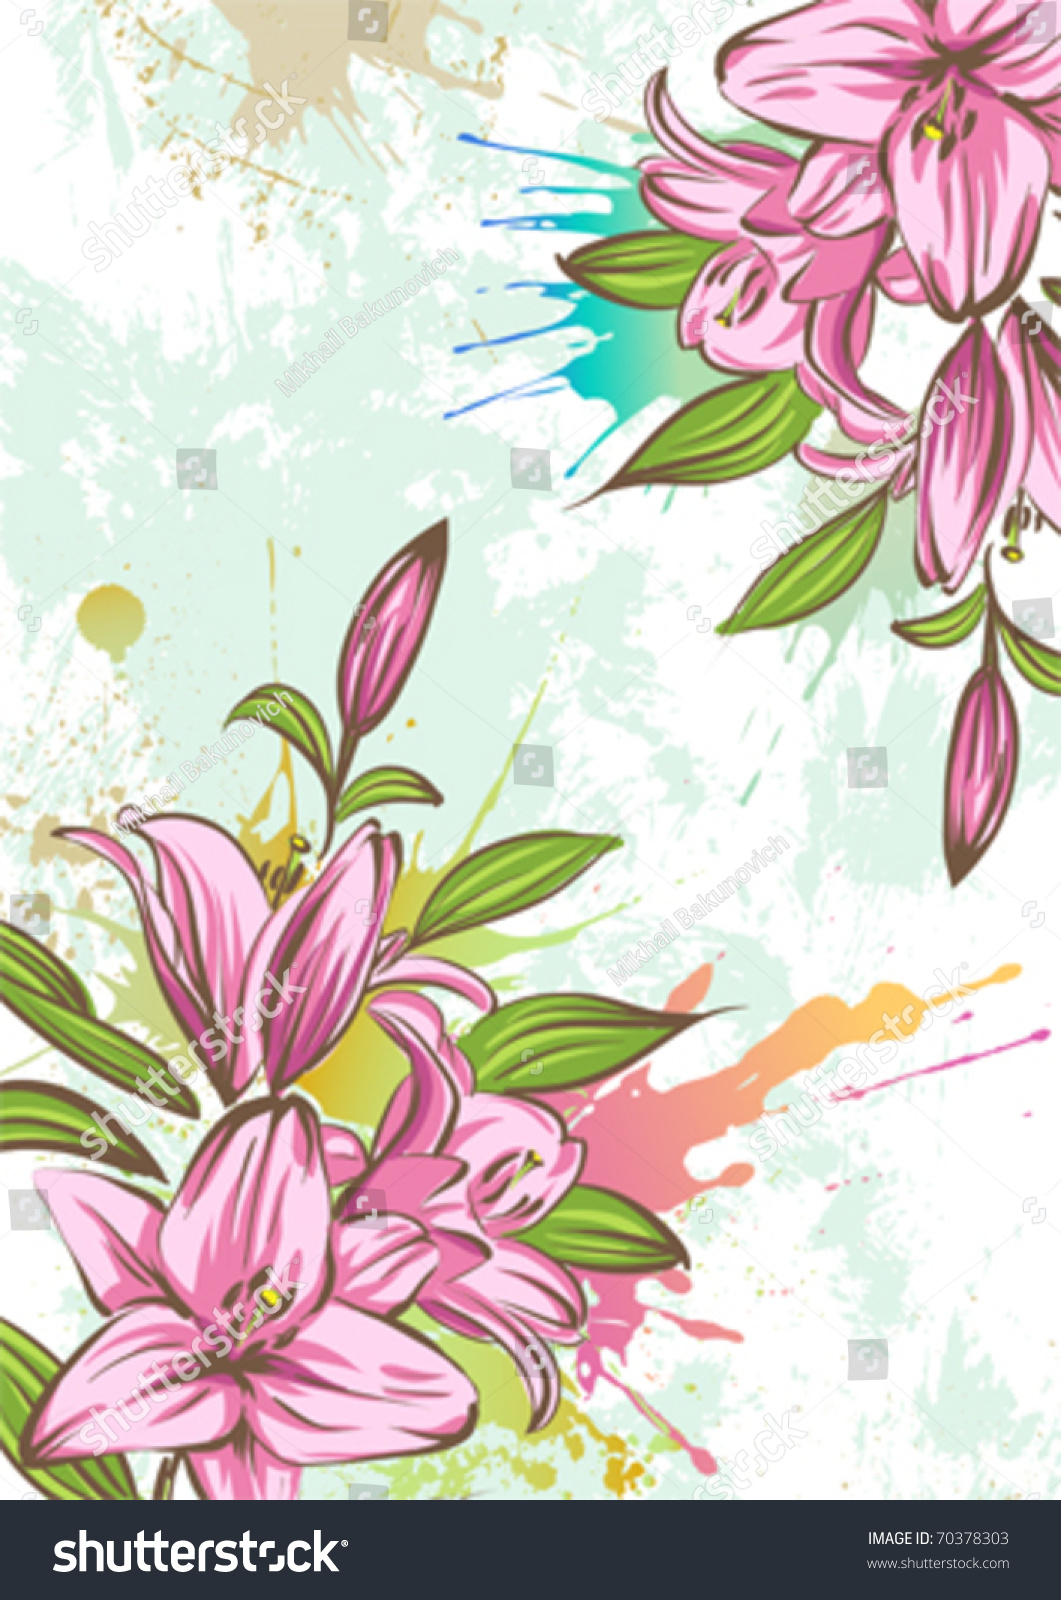 Stylized Lily On A Grunge Background Stock Vector ...